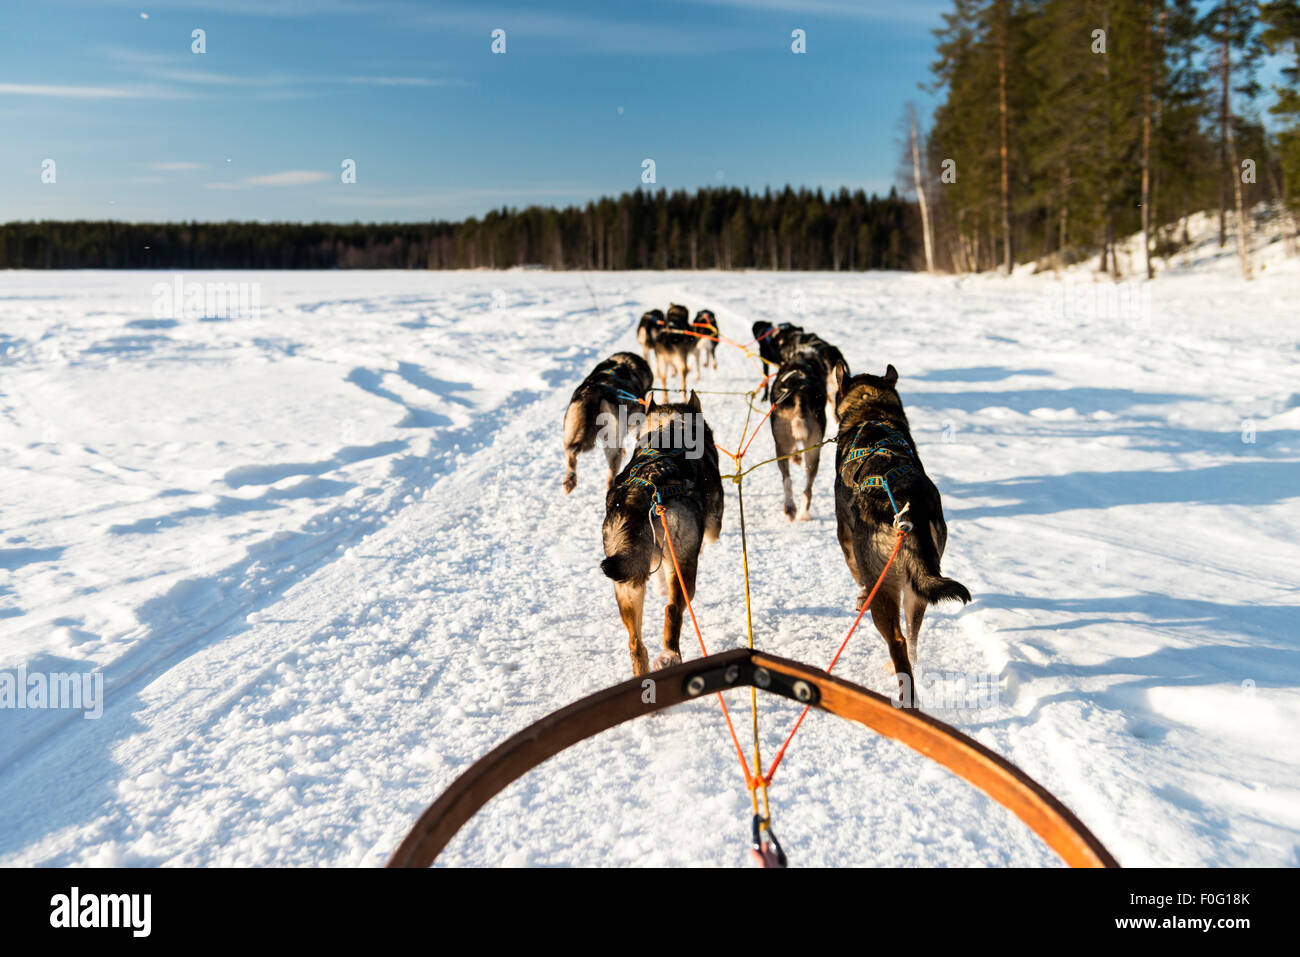 Dog sledding on snow with forest trees in the background Swedish Lapland Sweden Scandinavia - Stock Image